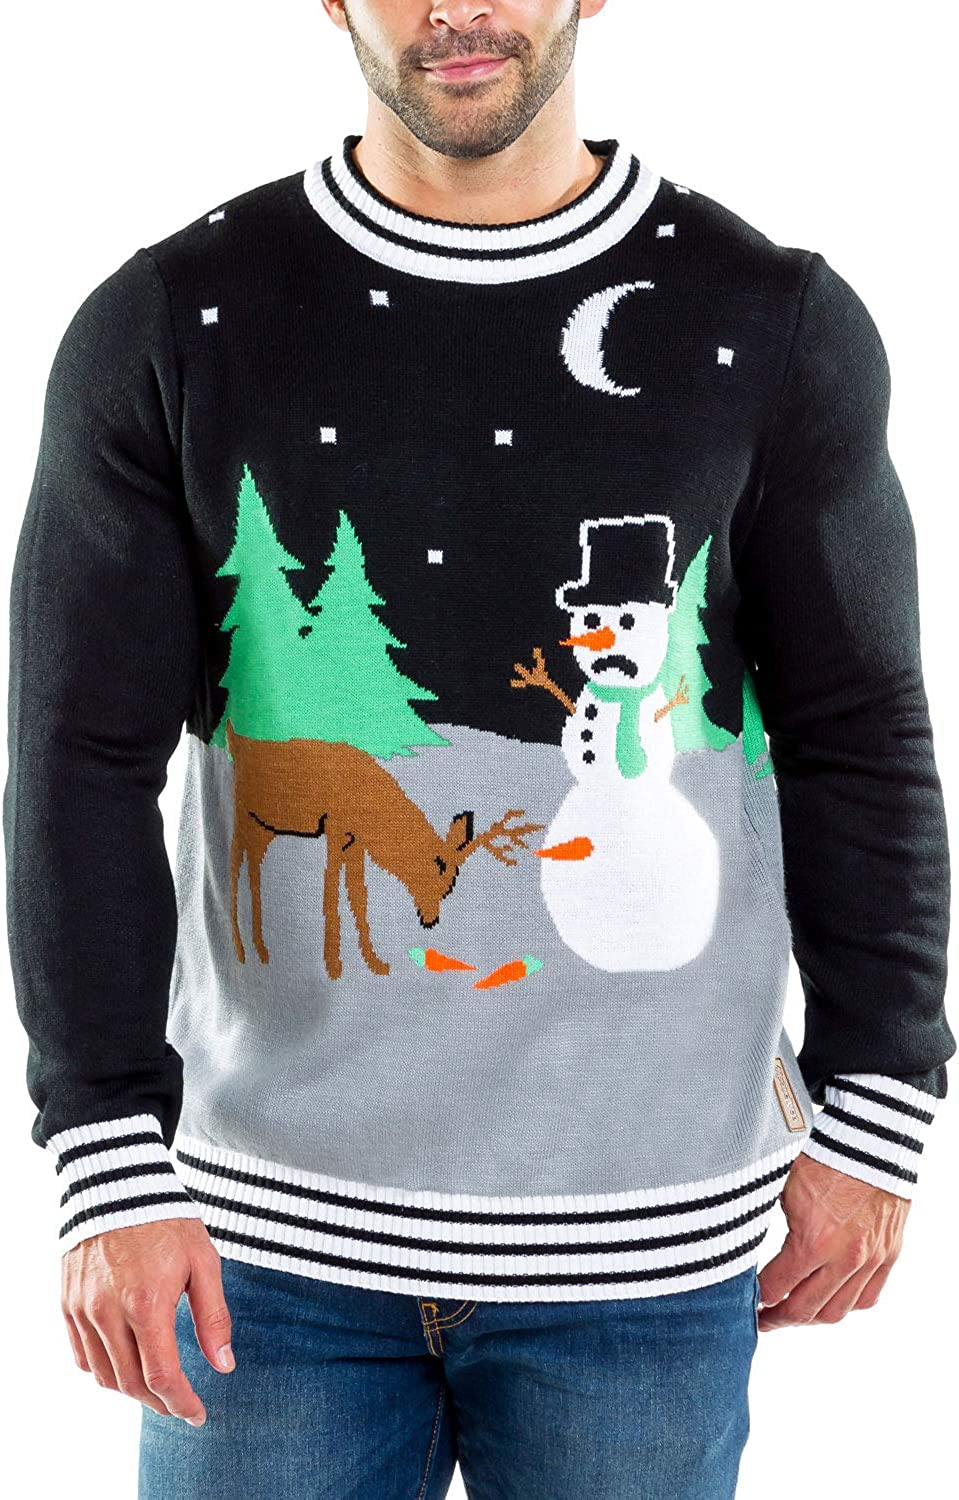 Tipsy Elves Classic Holiday Characters Ugly Christmas Sweaters for Men - Funny Guys Pullovers